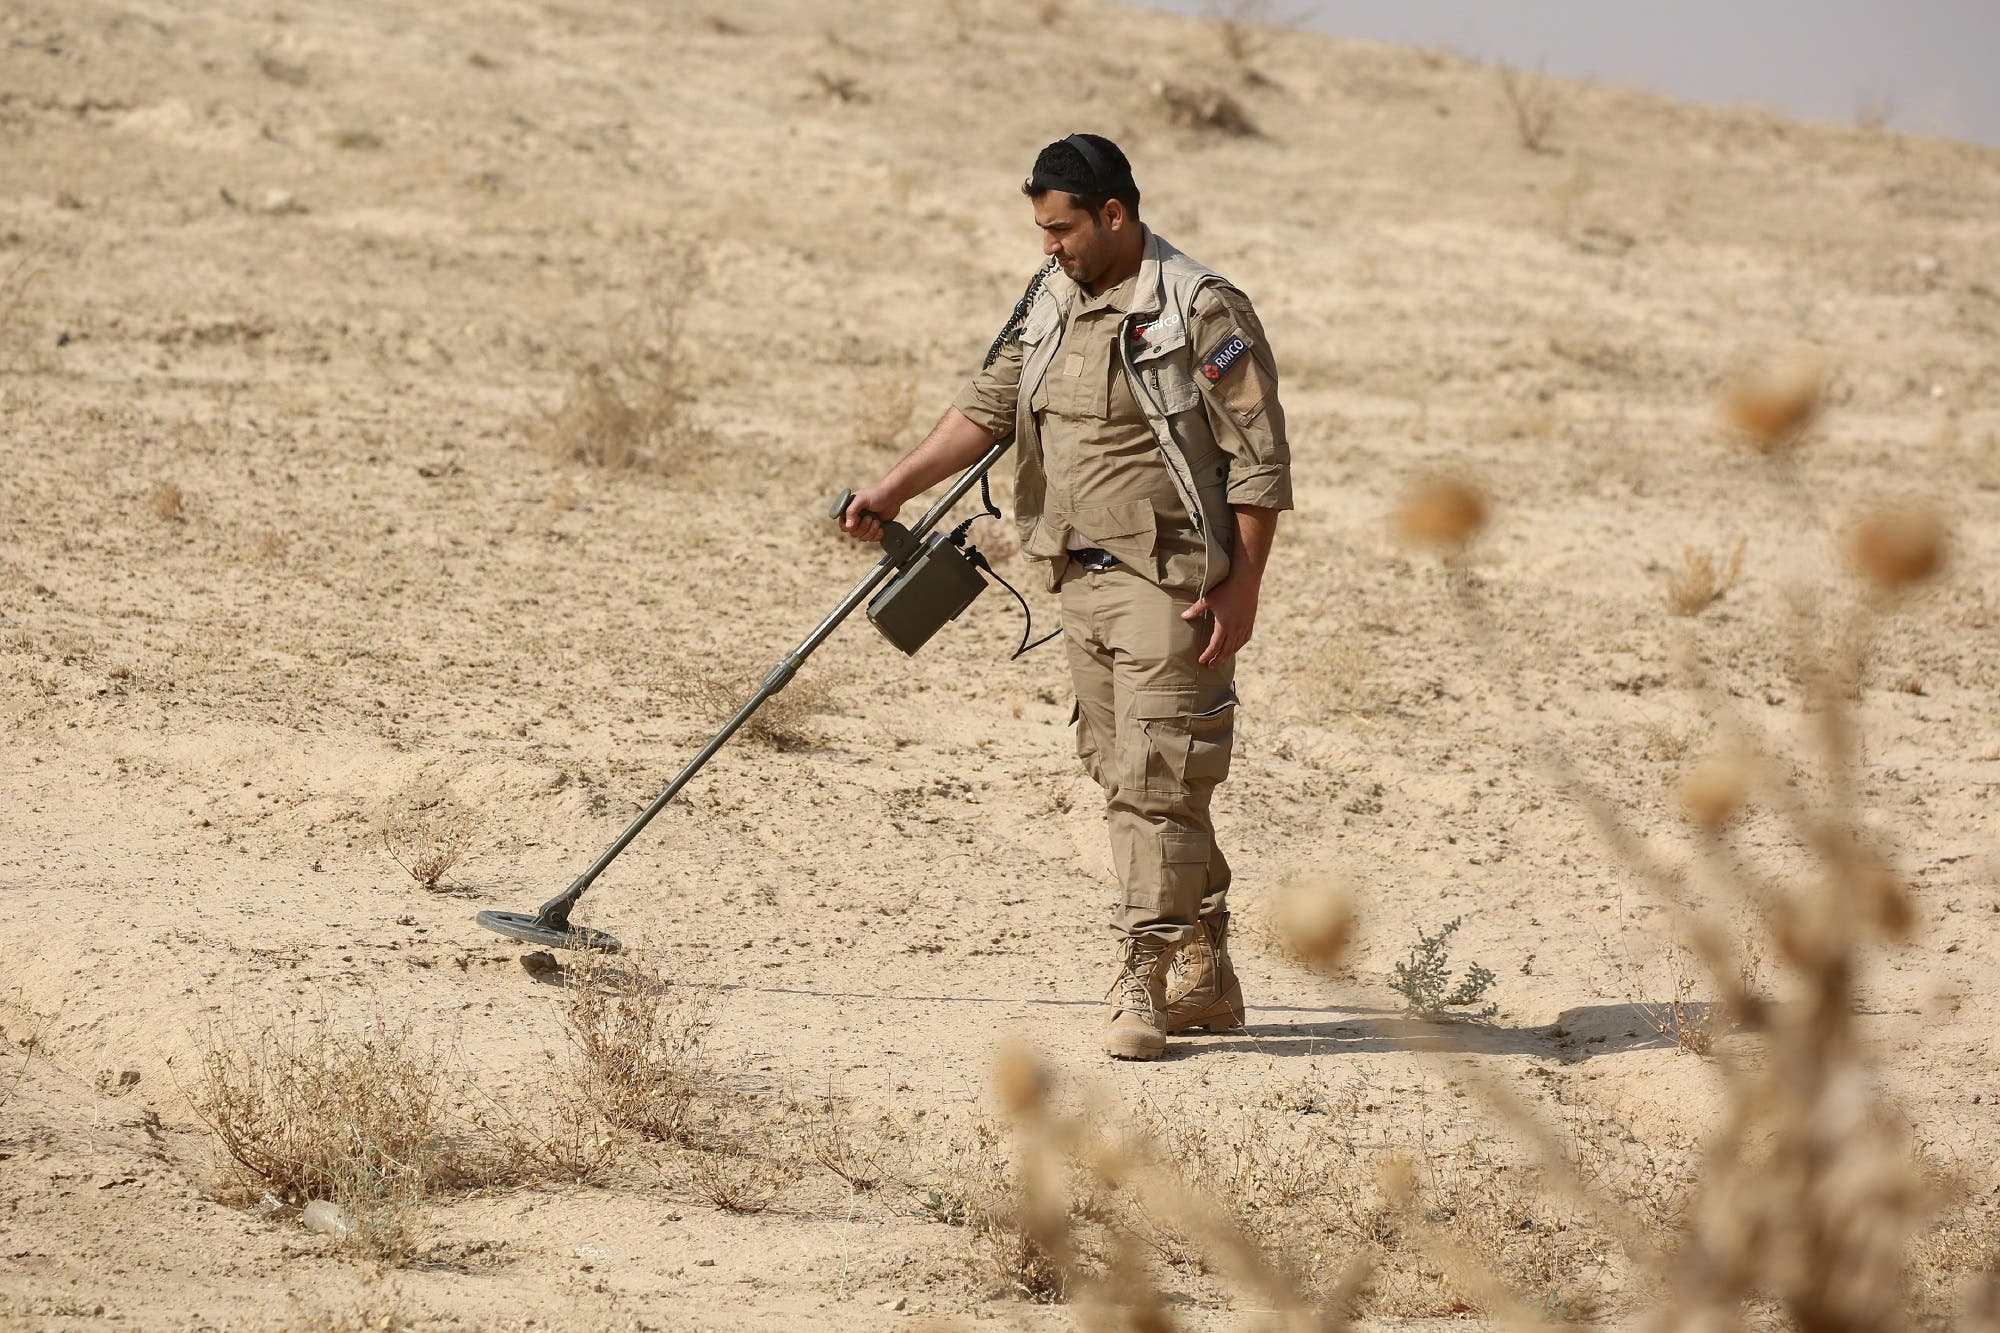 A Syrian member of the Roj mine clearing organization works at removing IEDs and mines planted by ISIS in Hassakeh province, on October 27, 2016. (AFP)